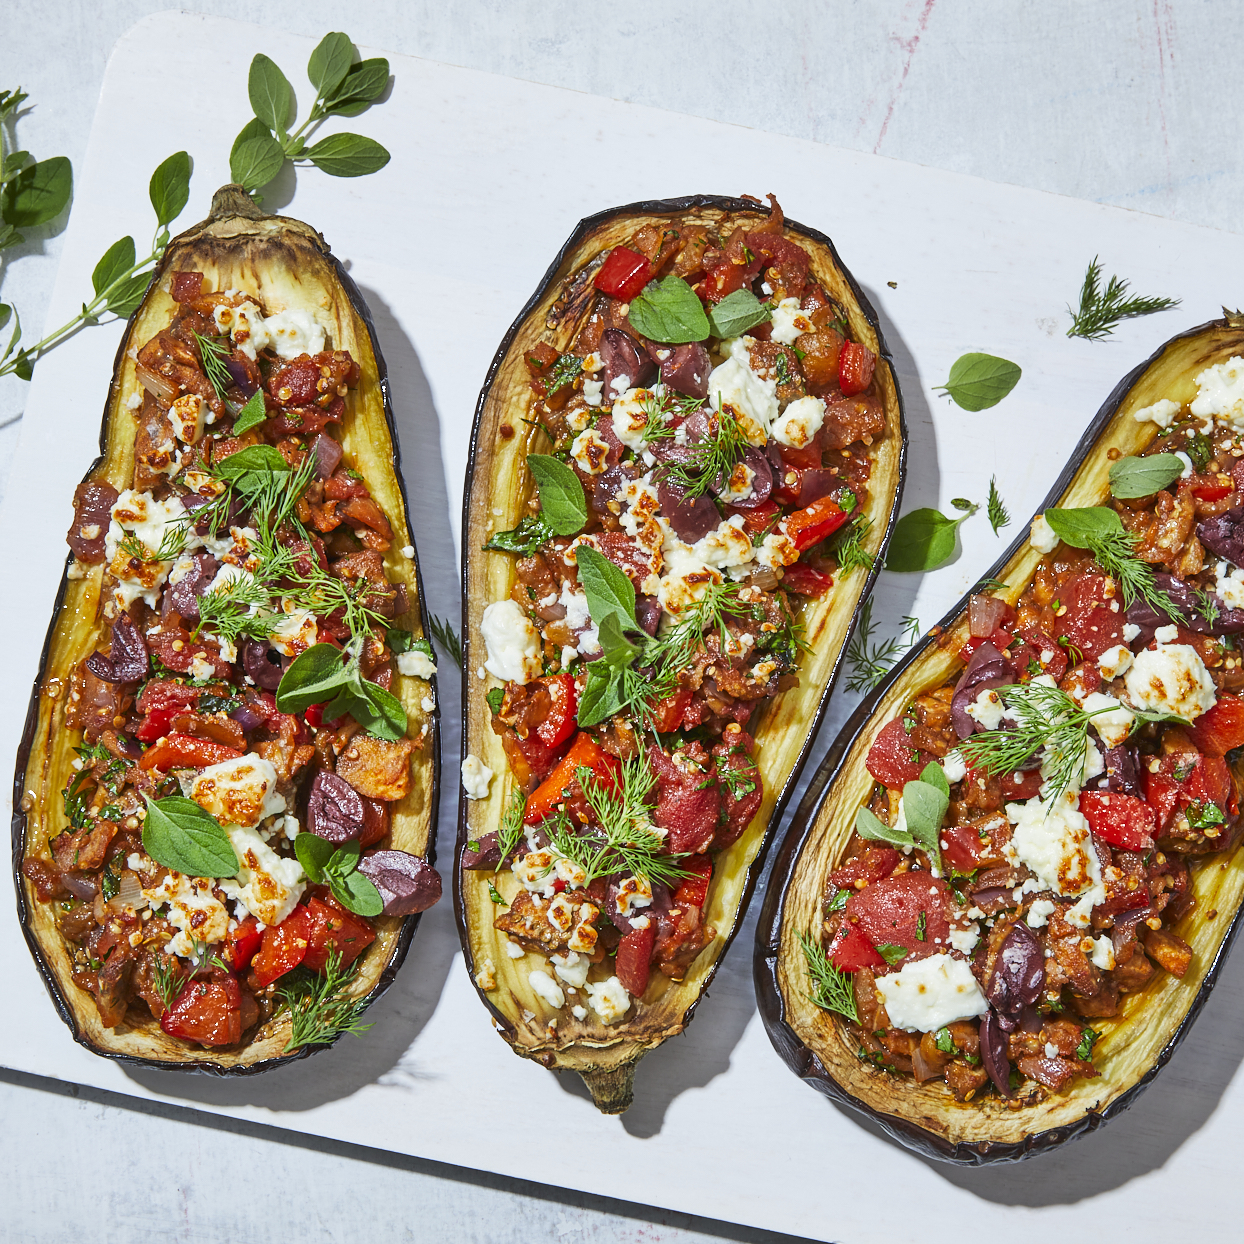 This Greek-inspired stuffed eggplant is filled with veggies and flavors of the Mediterranean. The dish is easy to pull together and the addition of cumin gives it a sweet, earthy note. Source: EatingWell.com, May 2020